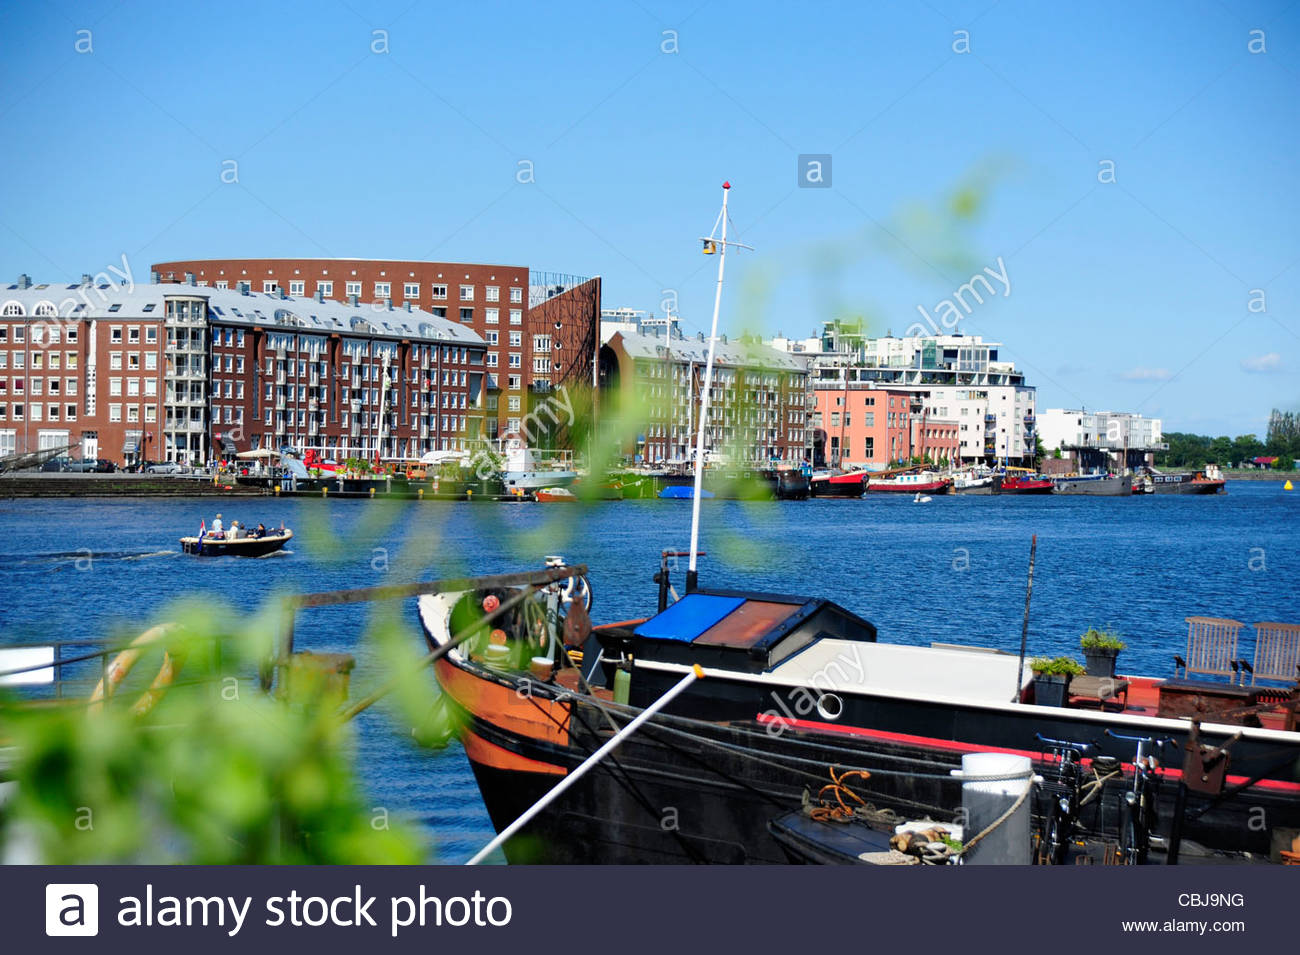 House boat at the Ijhaven canal, at back the island KNSM-Eiland, Amsterdam, the Netherlands, Europe - Stock Image